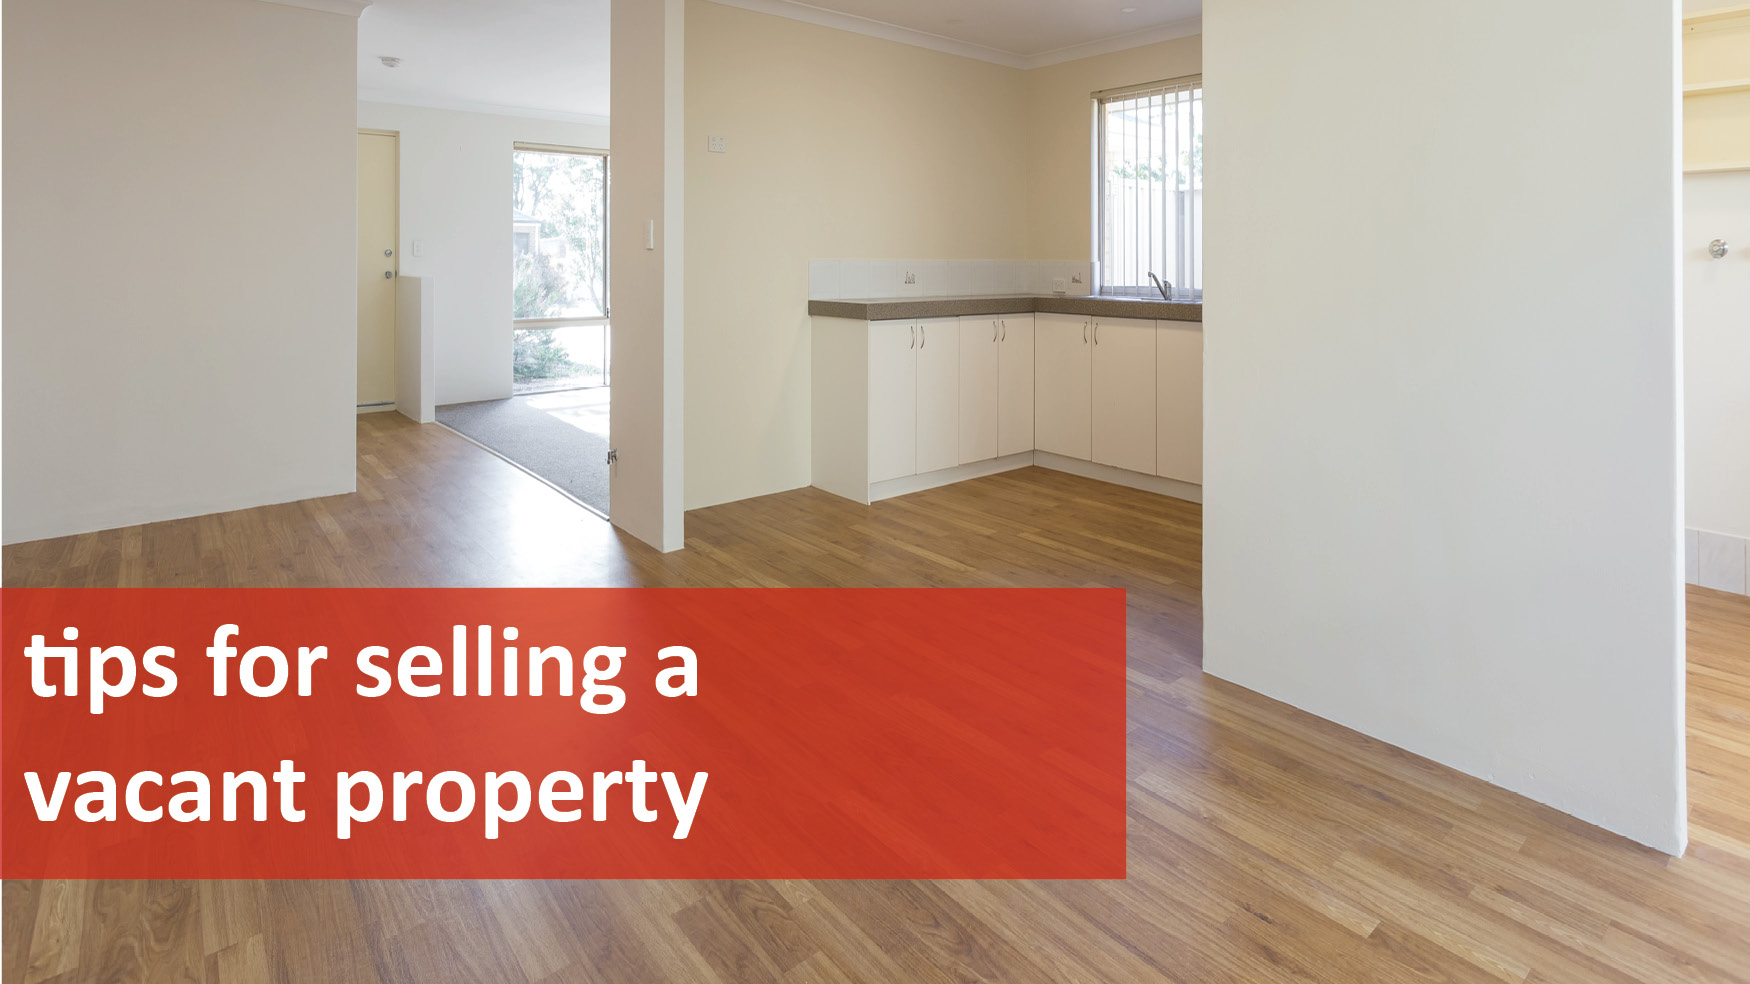 We Love Rentals Tips for Selling a Vacant Property